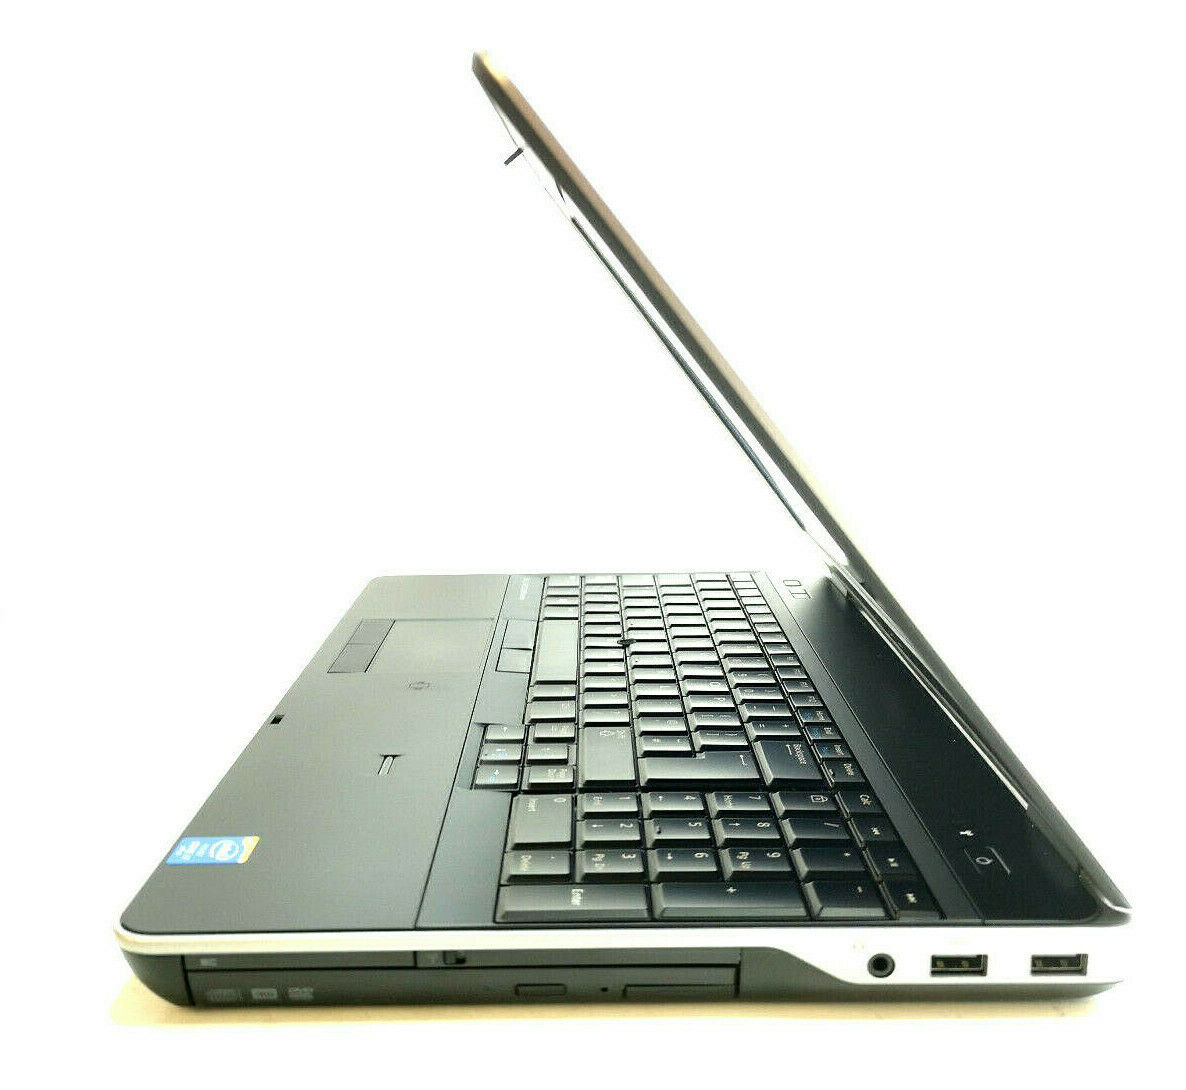 Dell Precision M2800 No 5